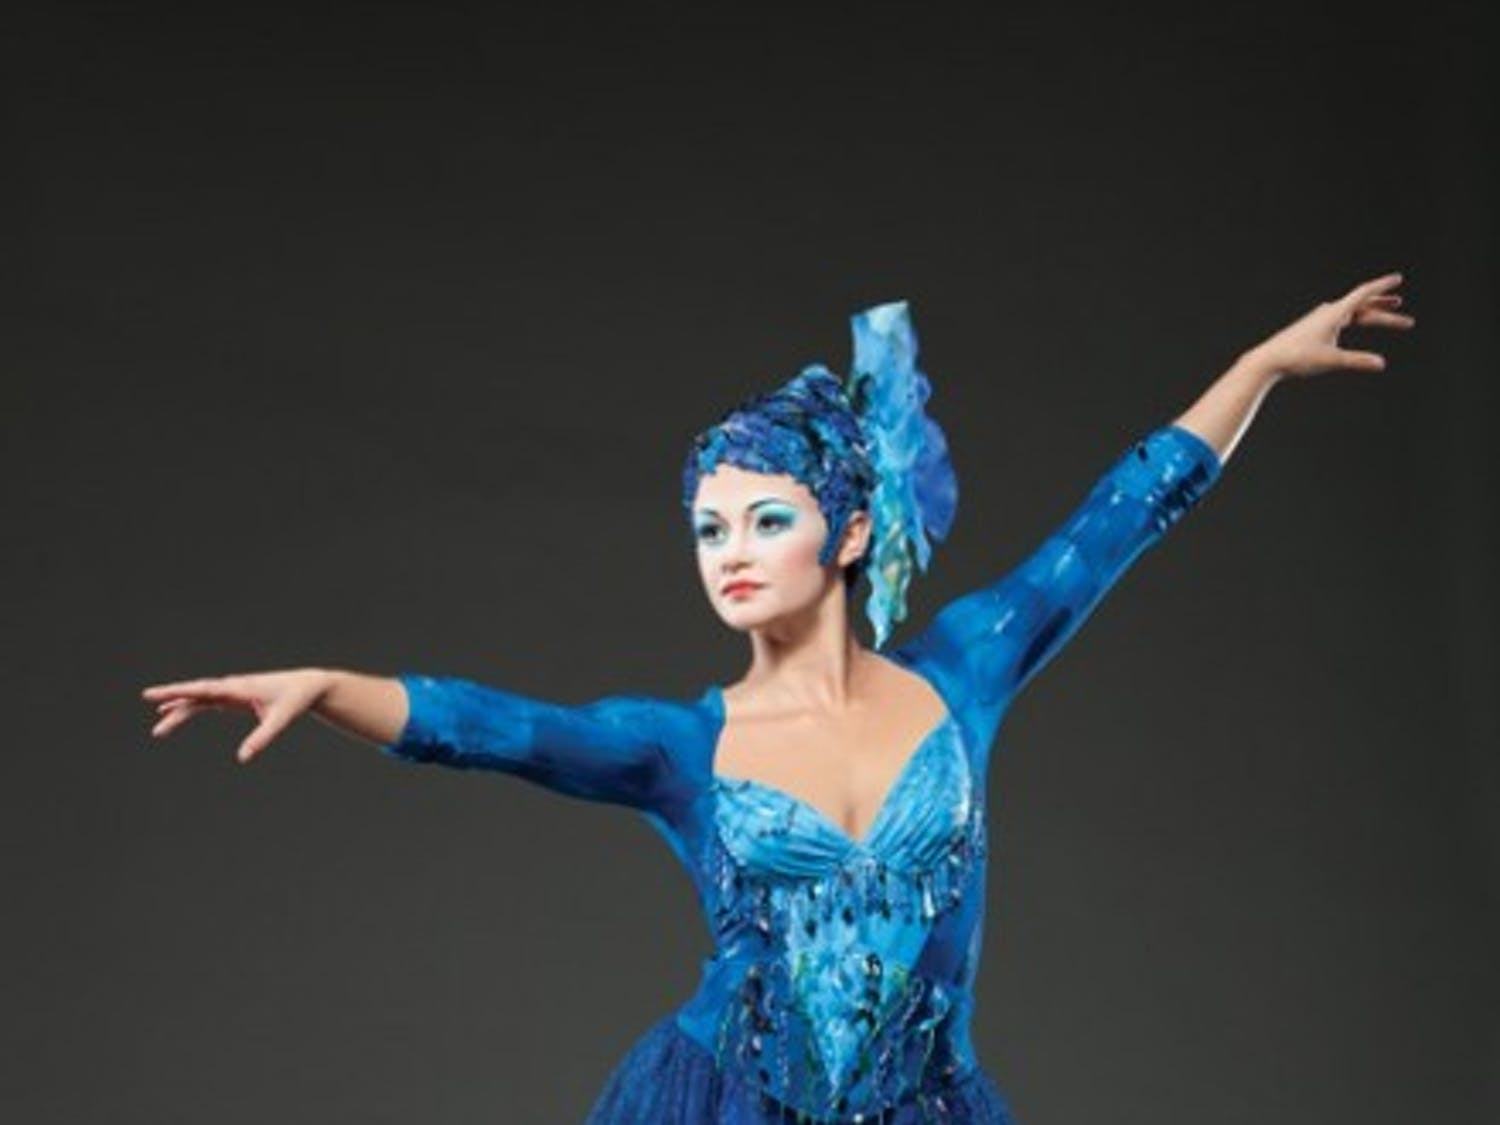 """Amanda Orozco, 22, of Orlando, poses in a promotional photo for the Cirque du Soleil show """"Dralion."""" The show is coming to the Stephen C. O'Connell Oct. 11-18."""